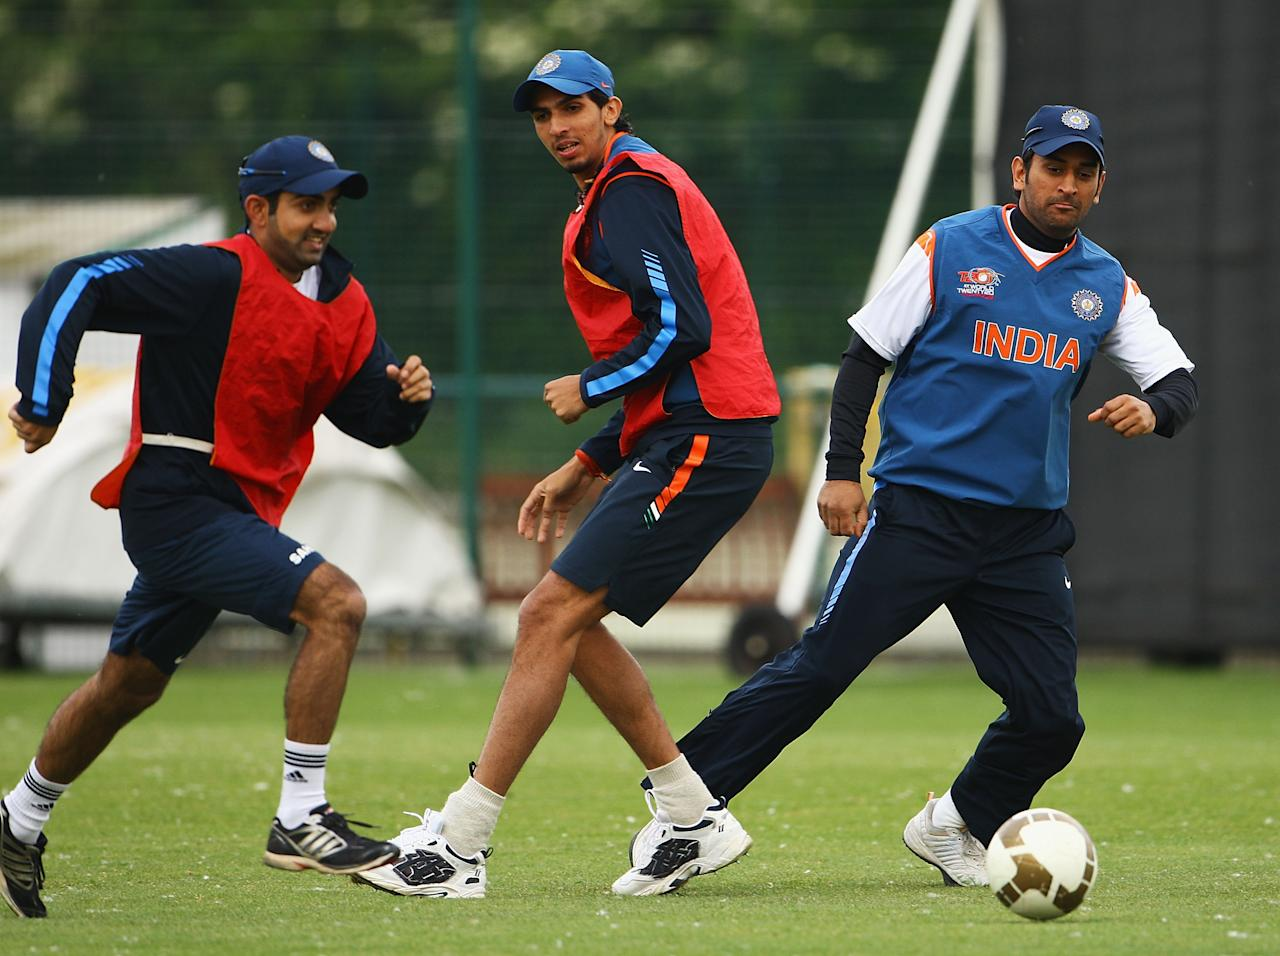 NOTTINGHAM, ENGLAND - JUNE 09:  Gautam Gambhir, Ishant Sharma and MS Dhoni, Captain of India play football during a nets session at Lady Bay Cricket Club on June 9, 2009 in Nottingham, England.  (Photo by Matthew Lewis/Getty Images)